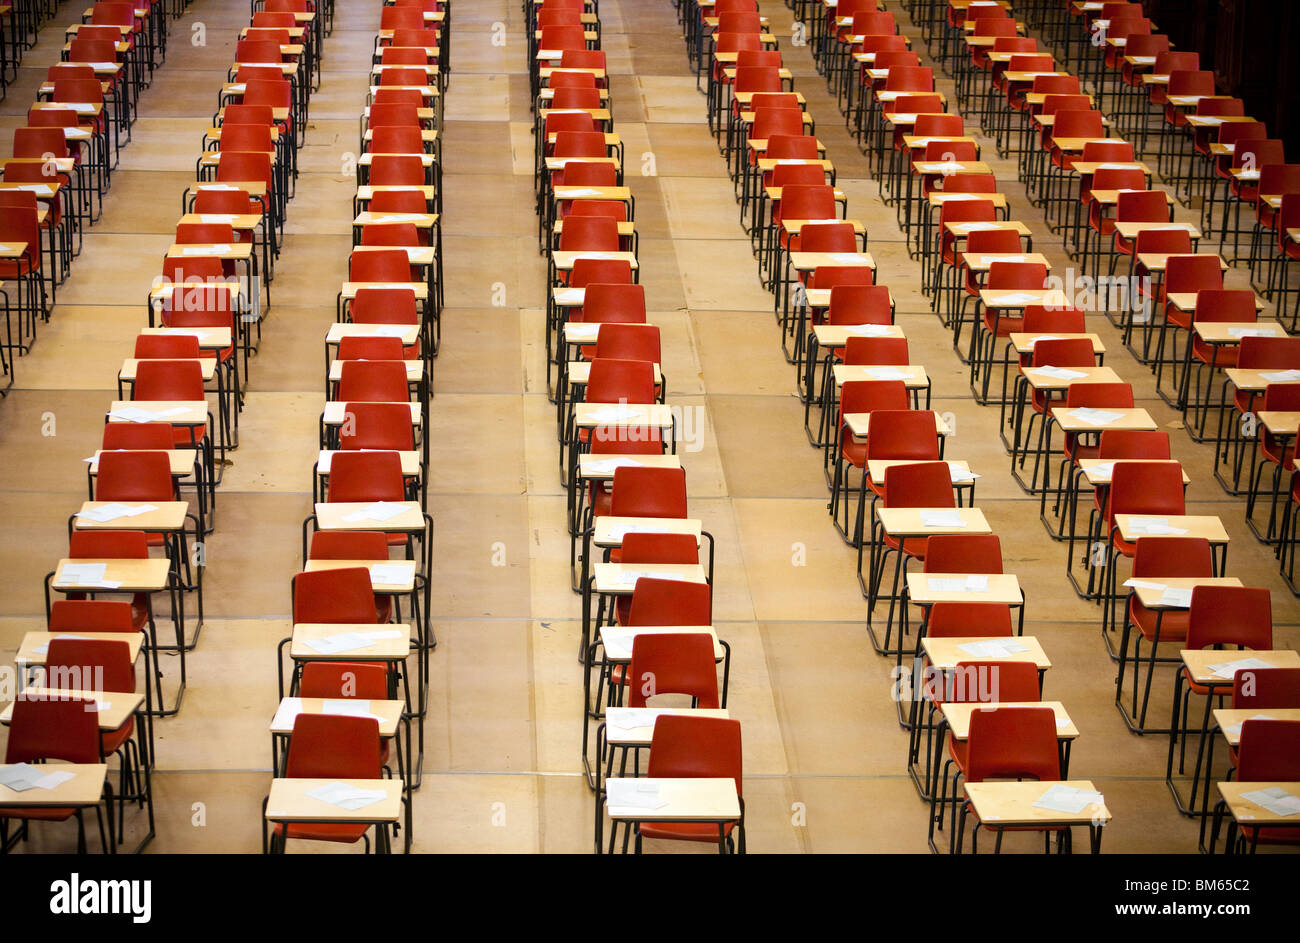 rows of chairs and tables set out in the great hall at Univeristy of Birmingham, England ready  for students to - Stock Image